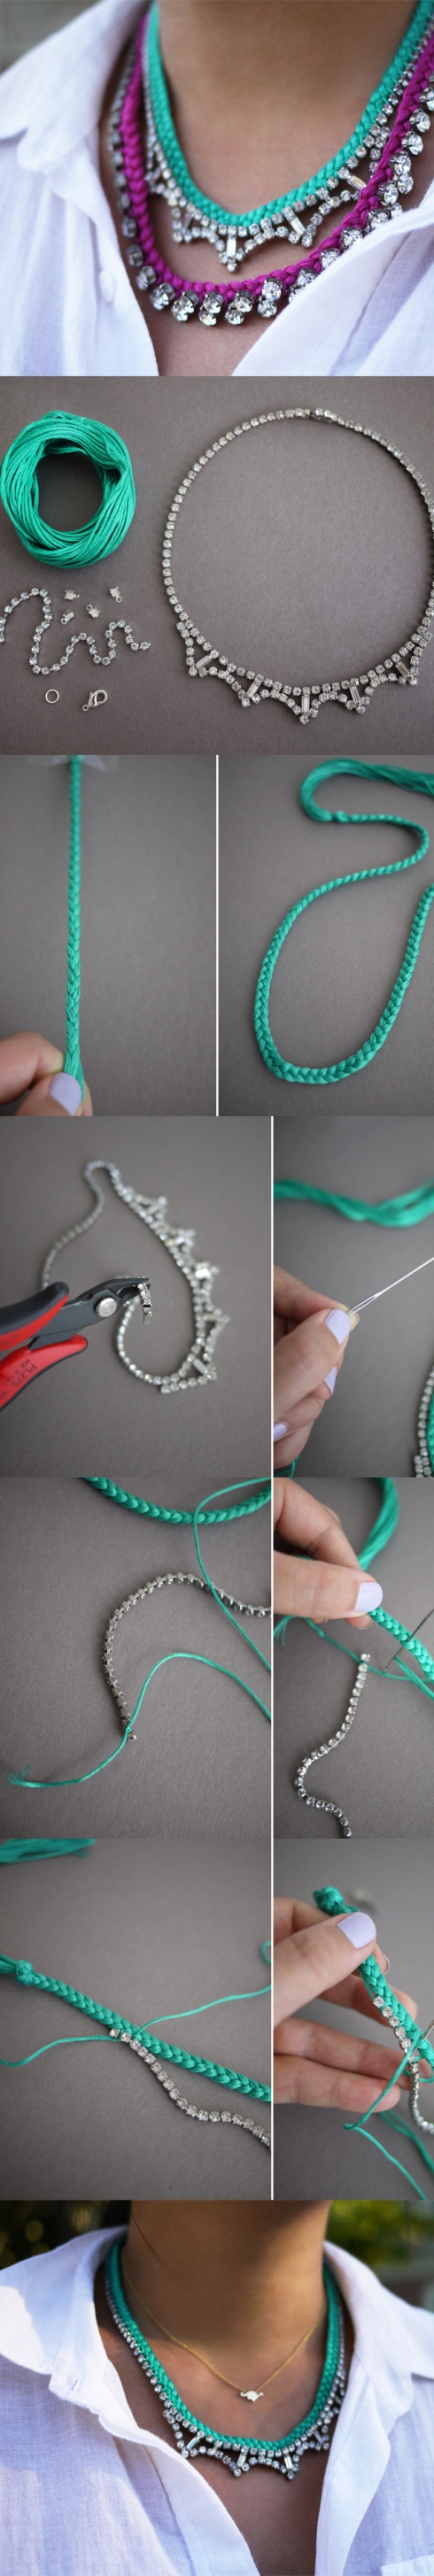 DIY-Braided-Rhinestone-Necklace